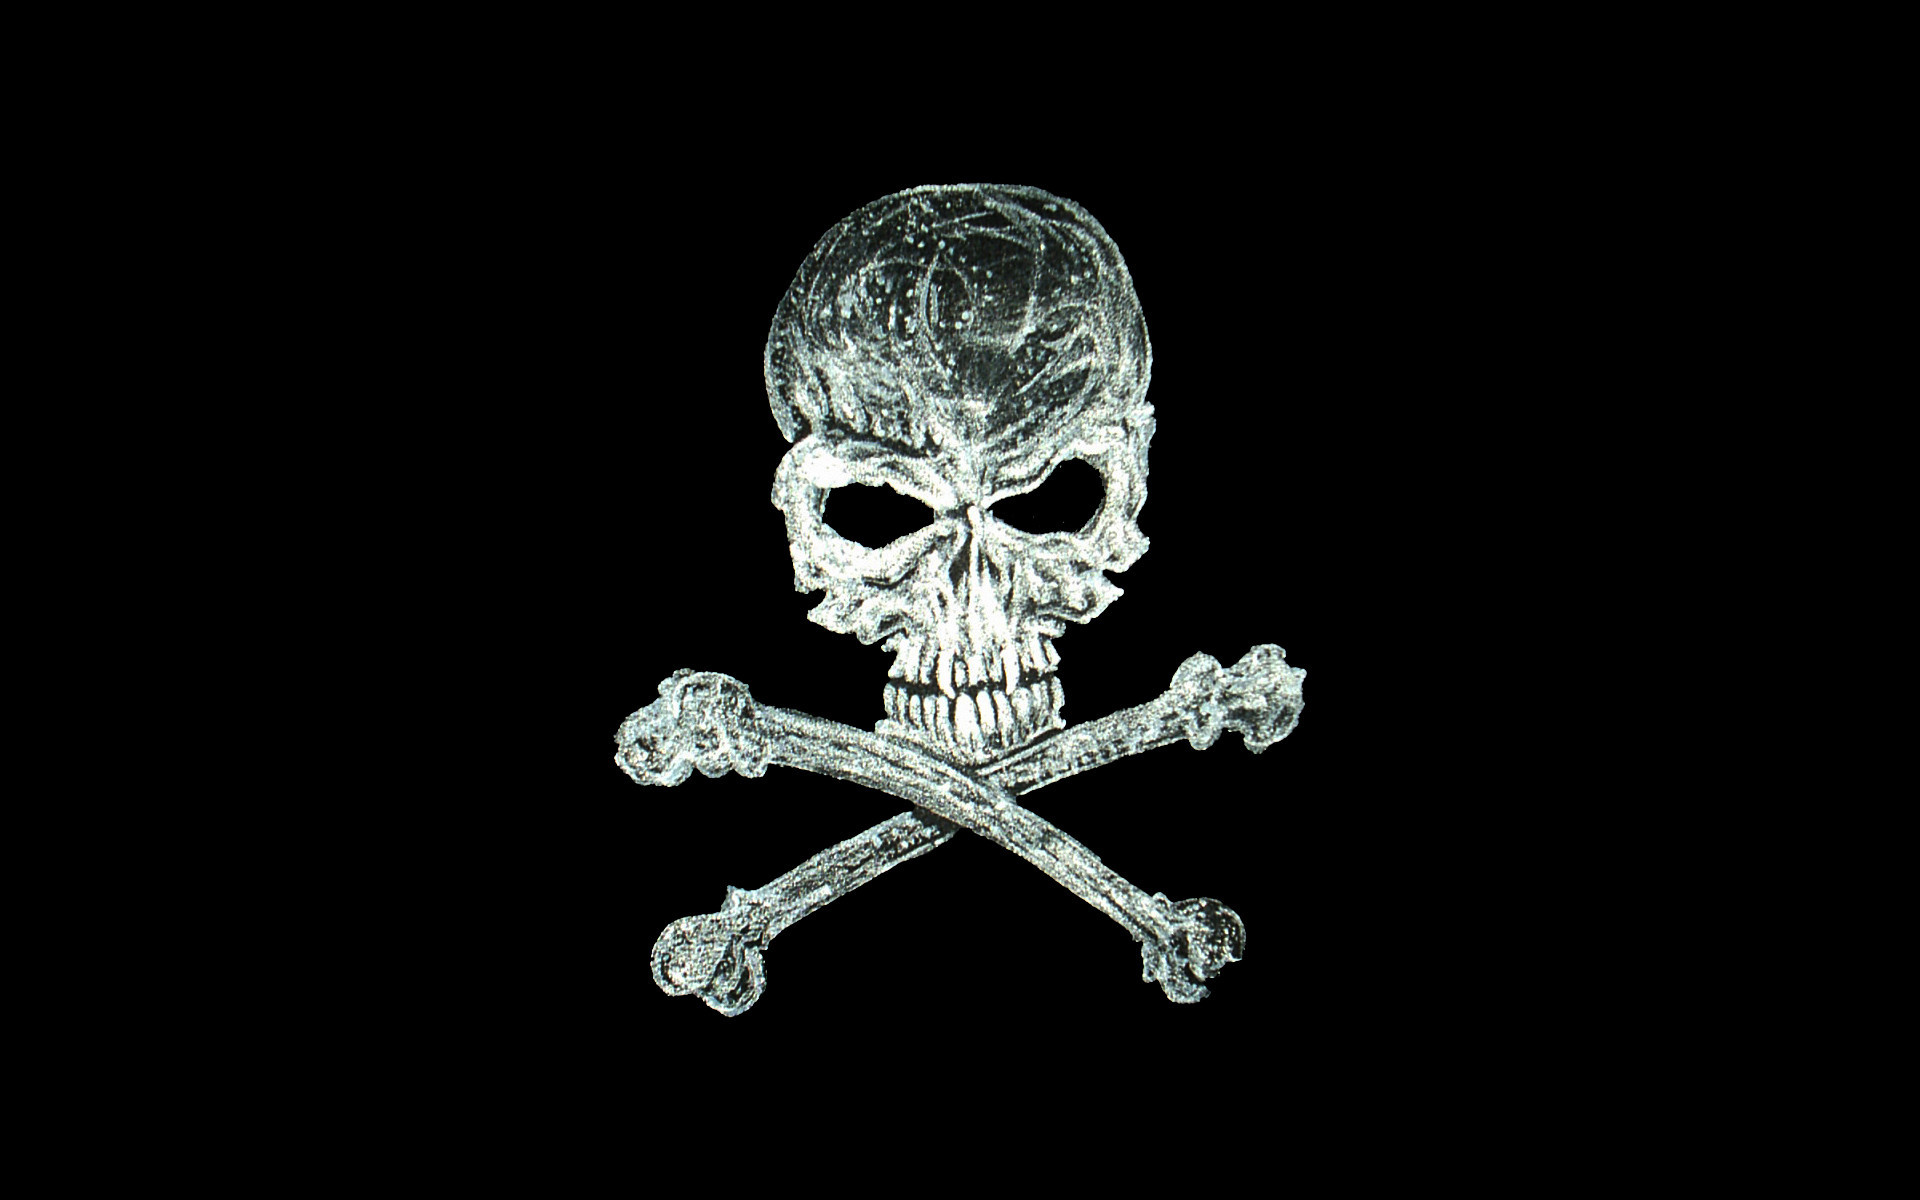 Skull And Bones 2018 Video Game 4k Hd Desktop Wallpaper: Skulls And Bones Wallpapers ·① WallpaperTag